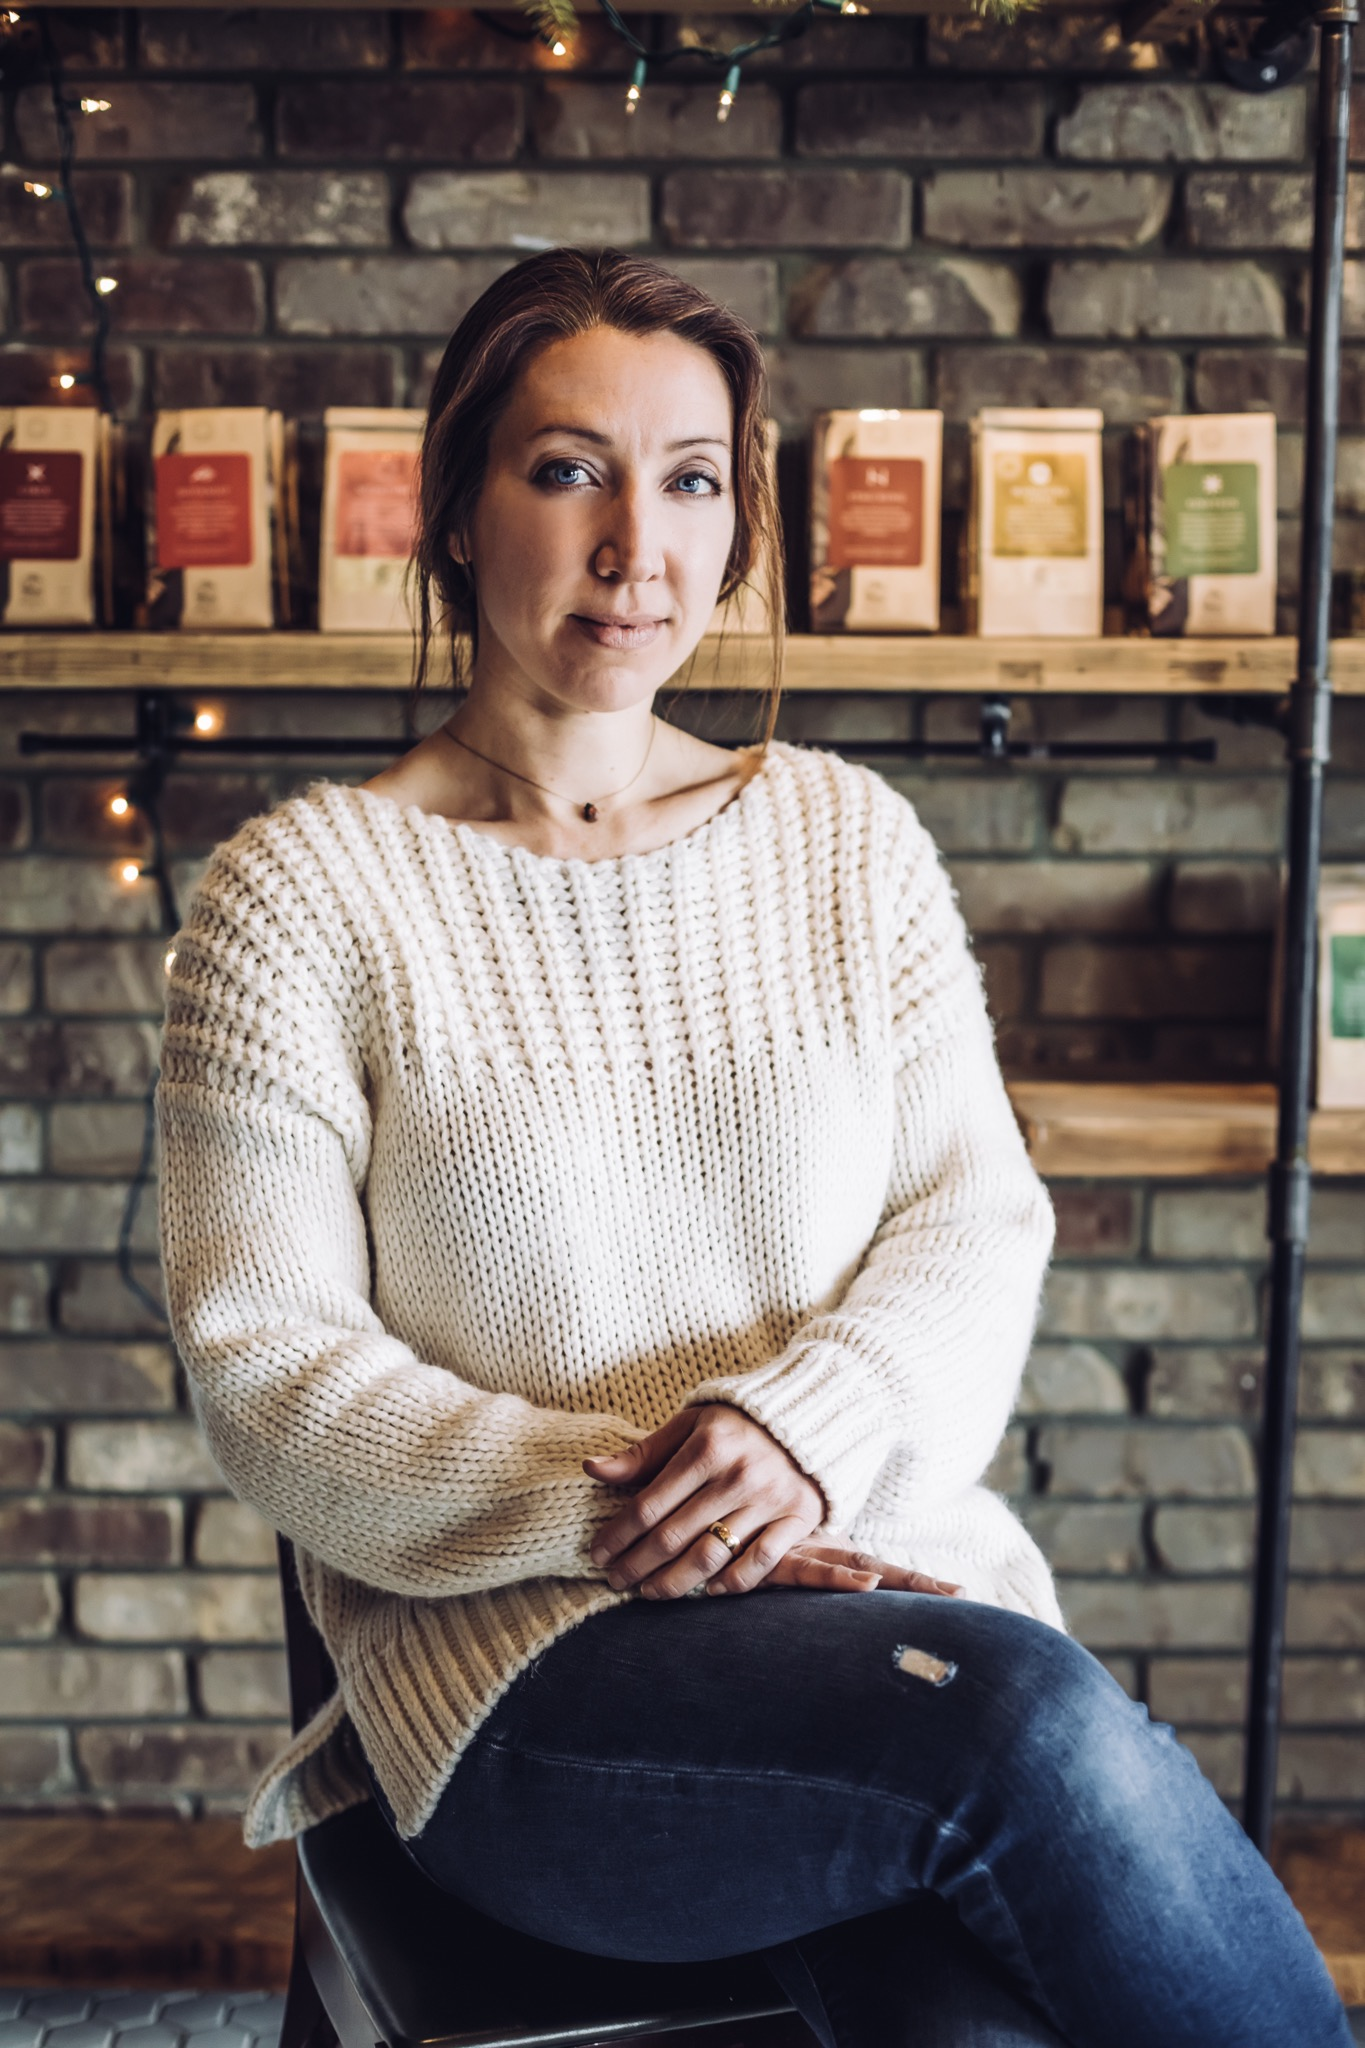 Andrea Lawse, Chief Tea Artisan and CEO of Artemis Teas & Botanicals